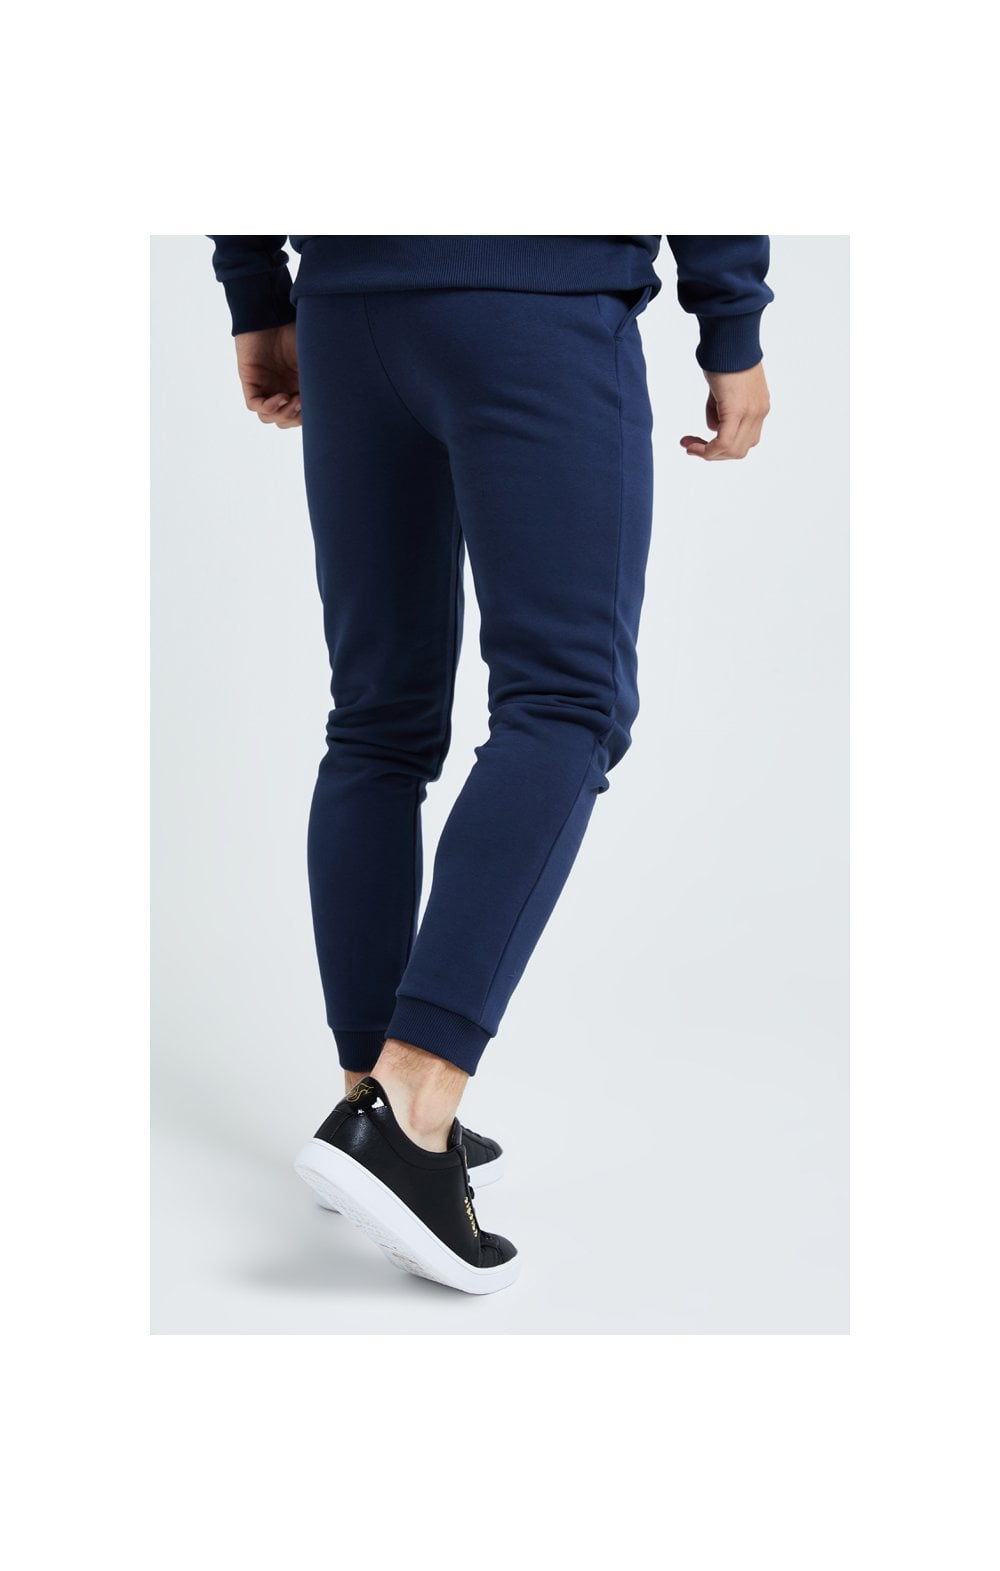 Illusive London Core Joggers – Navy (3)